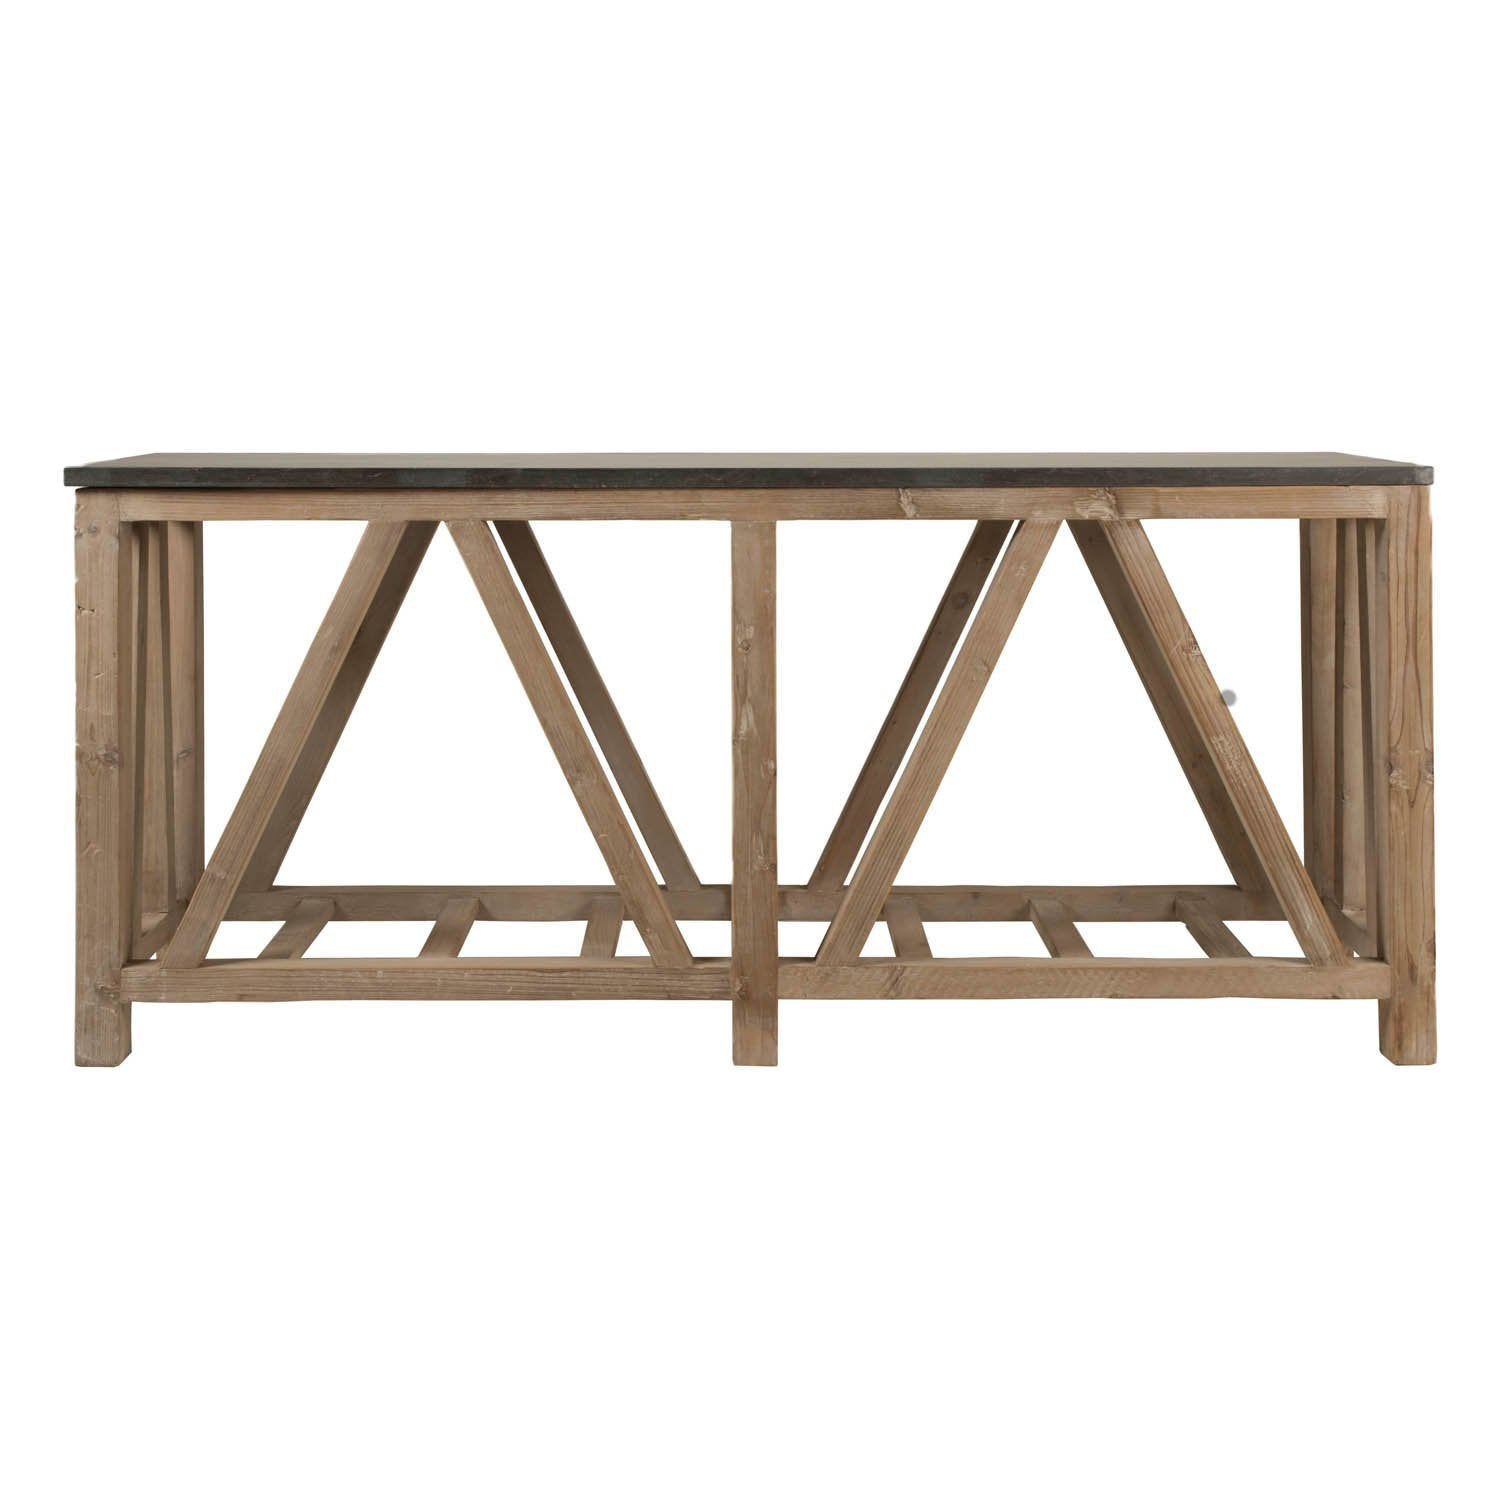 Blue Stone Console Table in Smoke Gray Pine